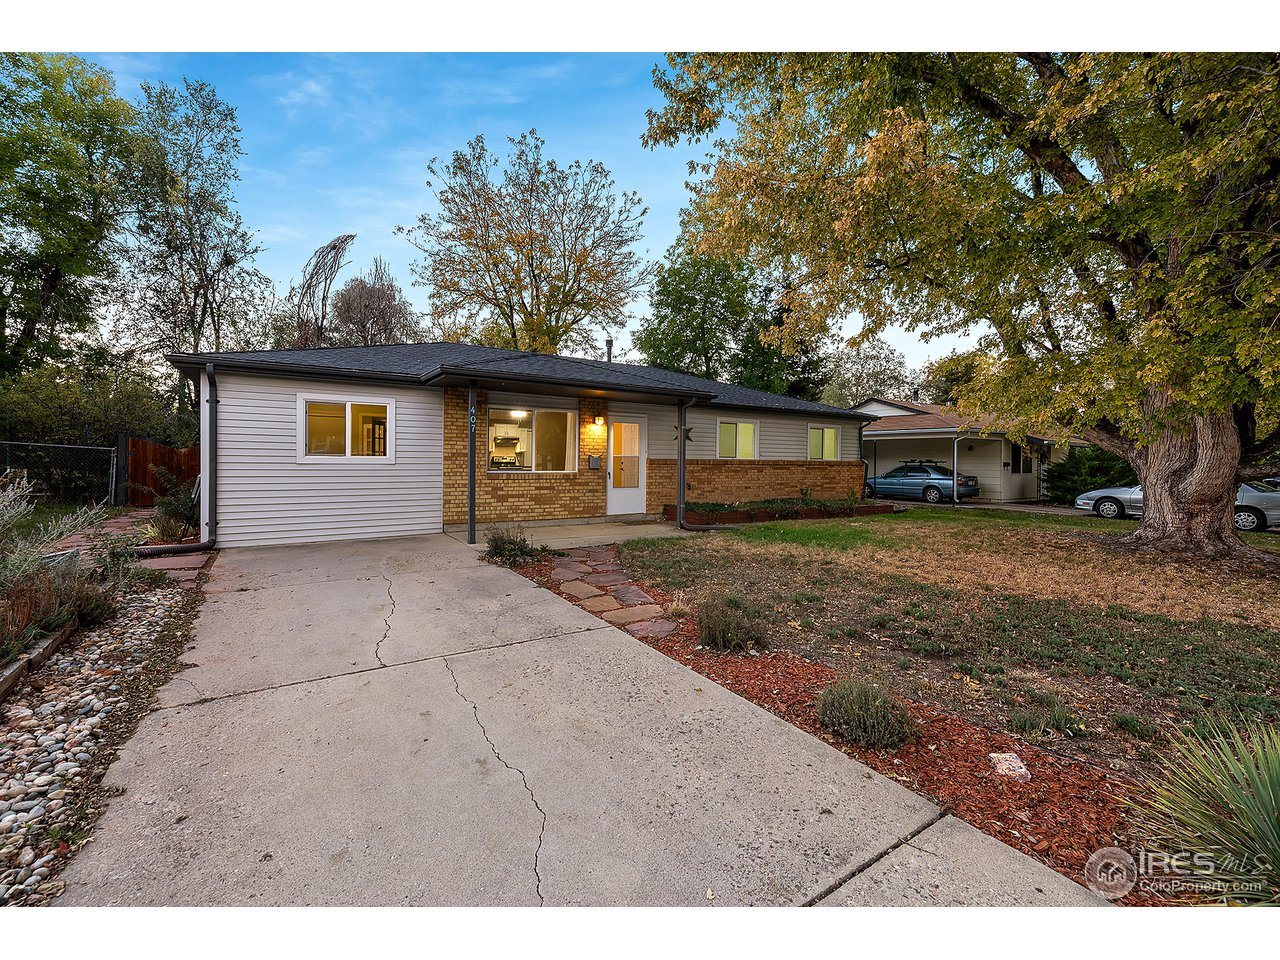 407 Franklin St, Fort Collins CO 80521